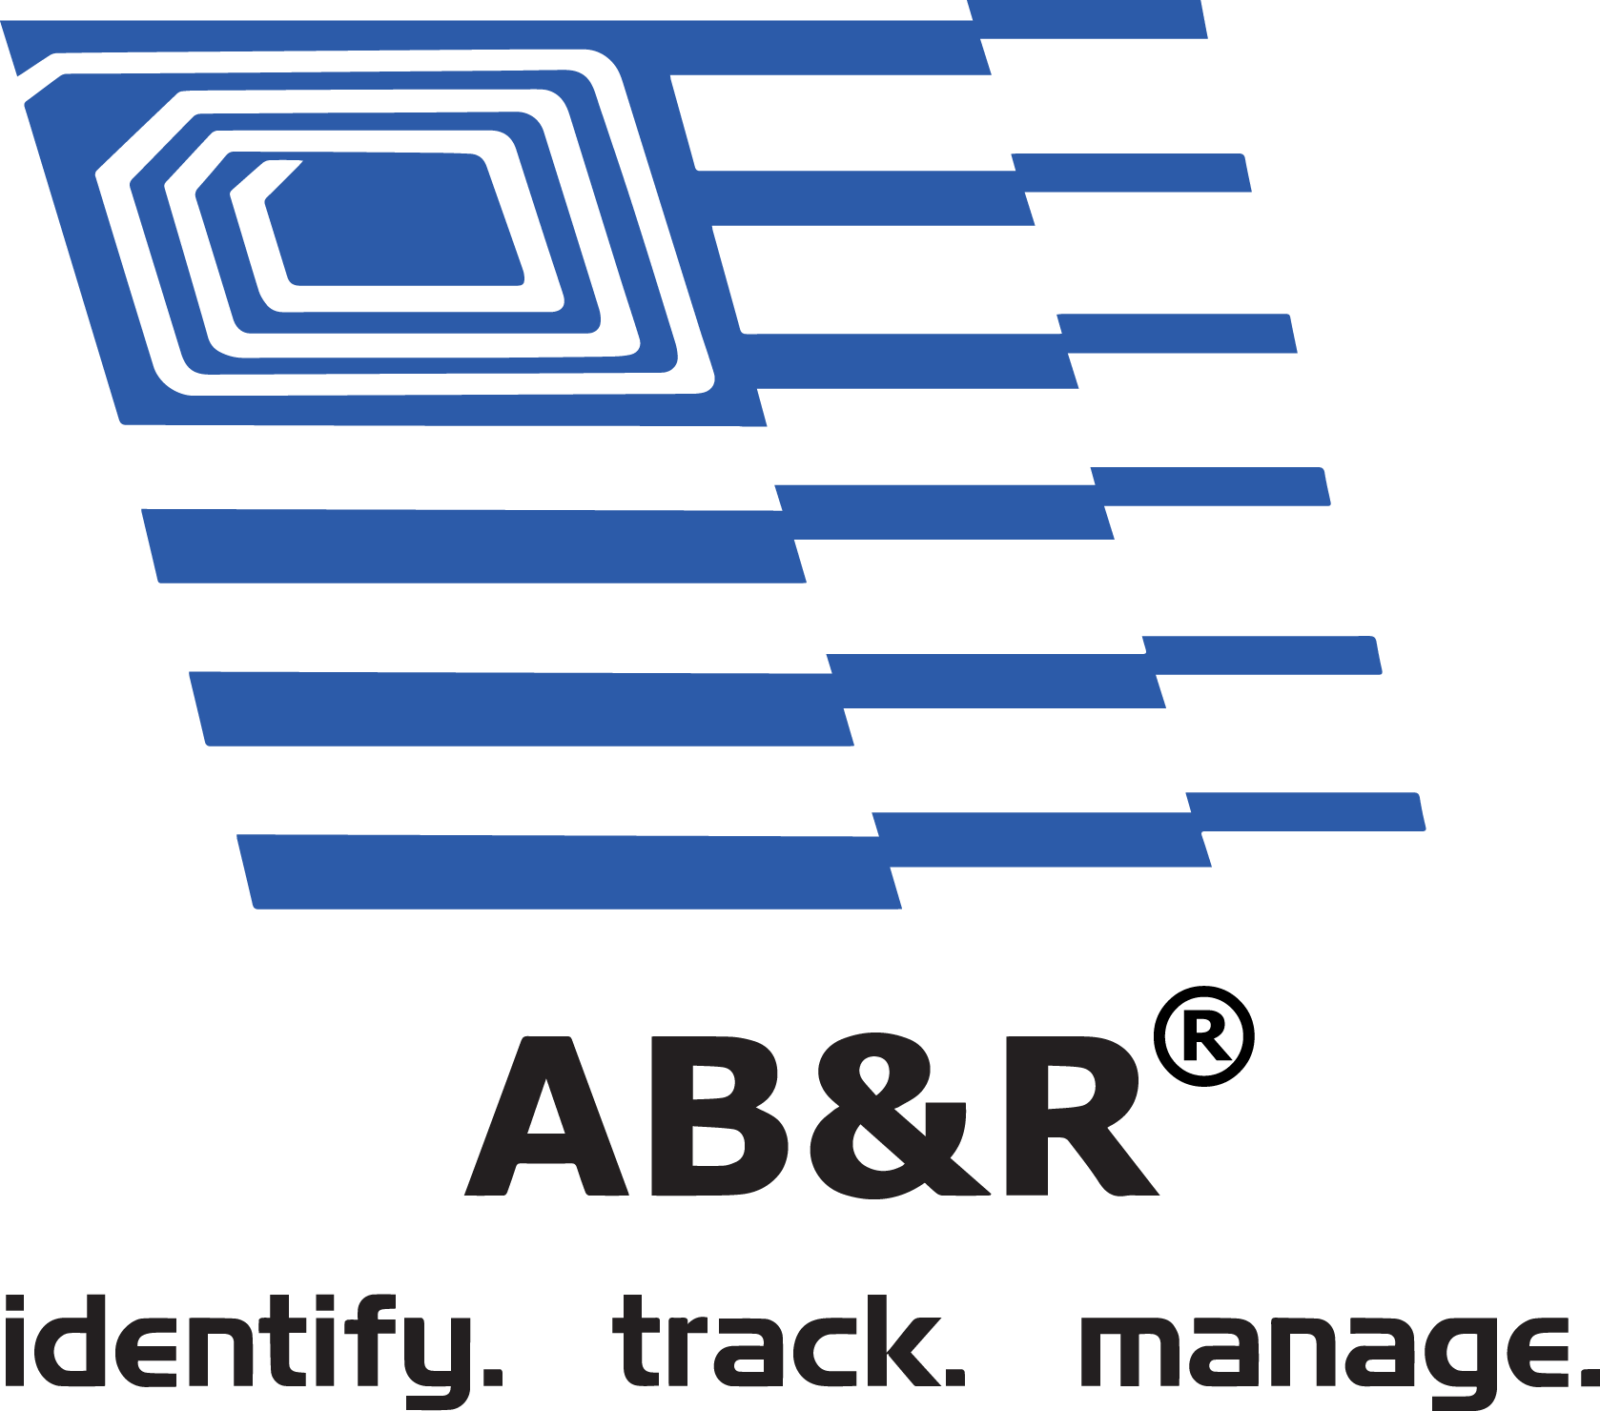 AB&R® (American Barcode and RFID) - Official Site